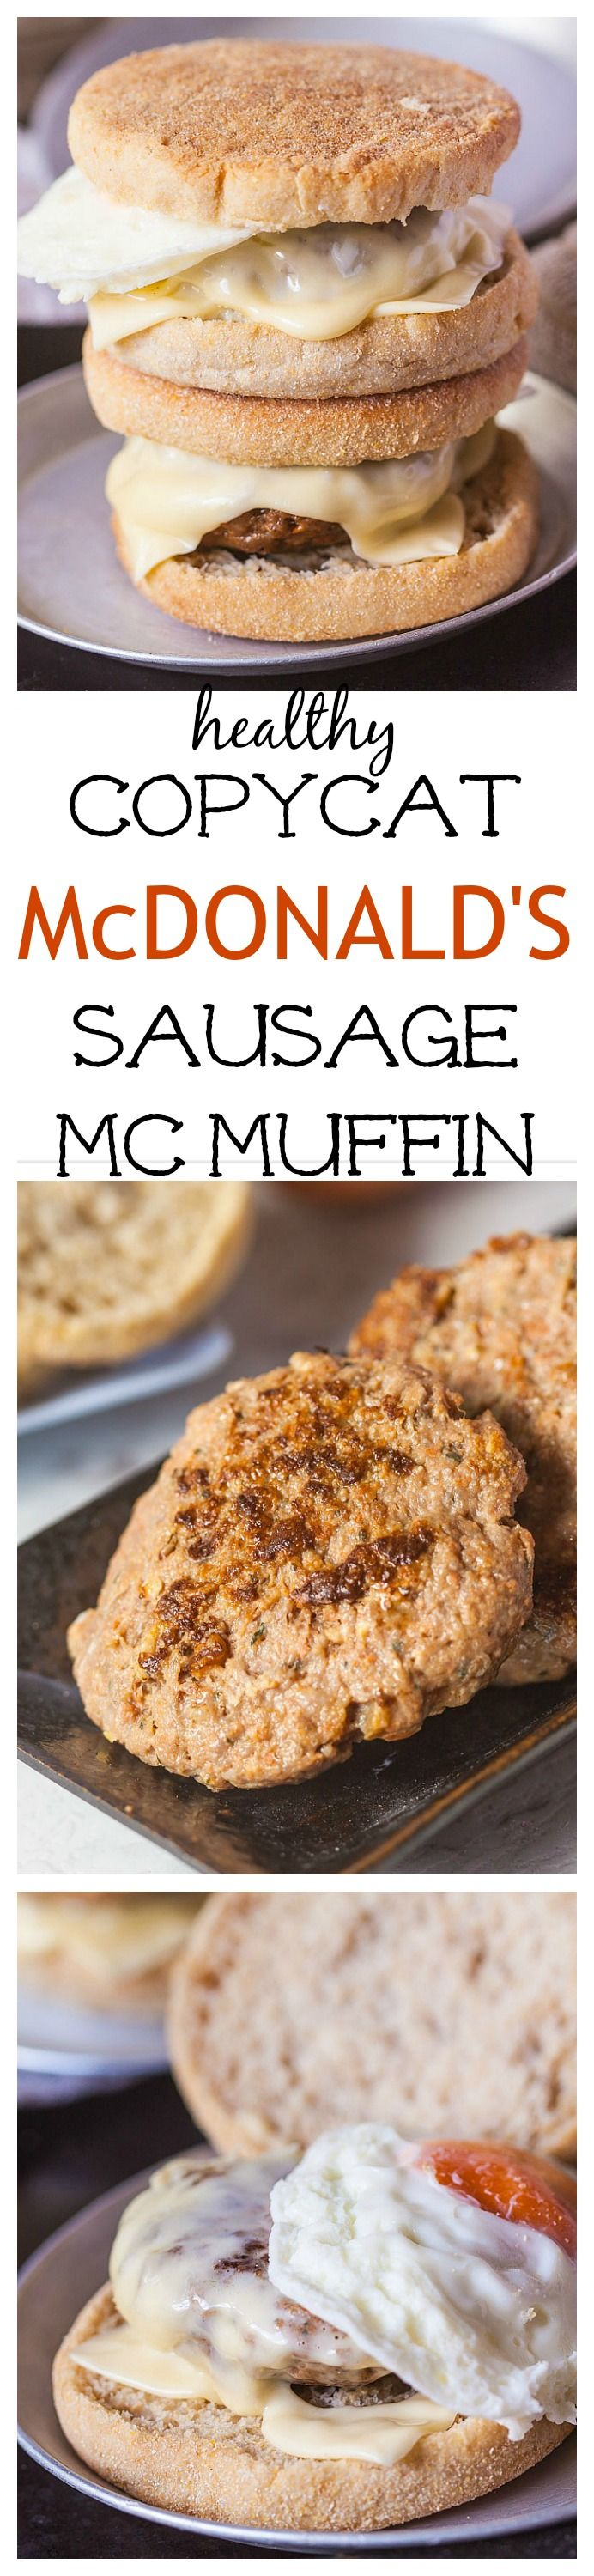 Copycat McDonalds Sausage McMuffin-A healthier take on it- GF, Paleo + whole30 too!